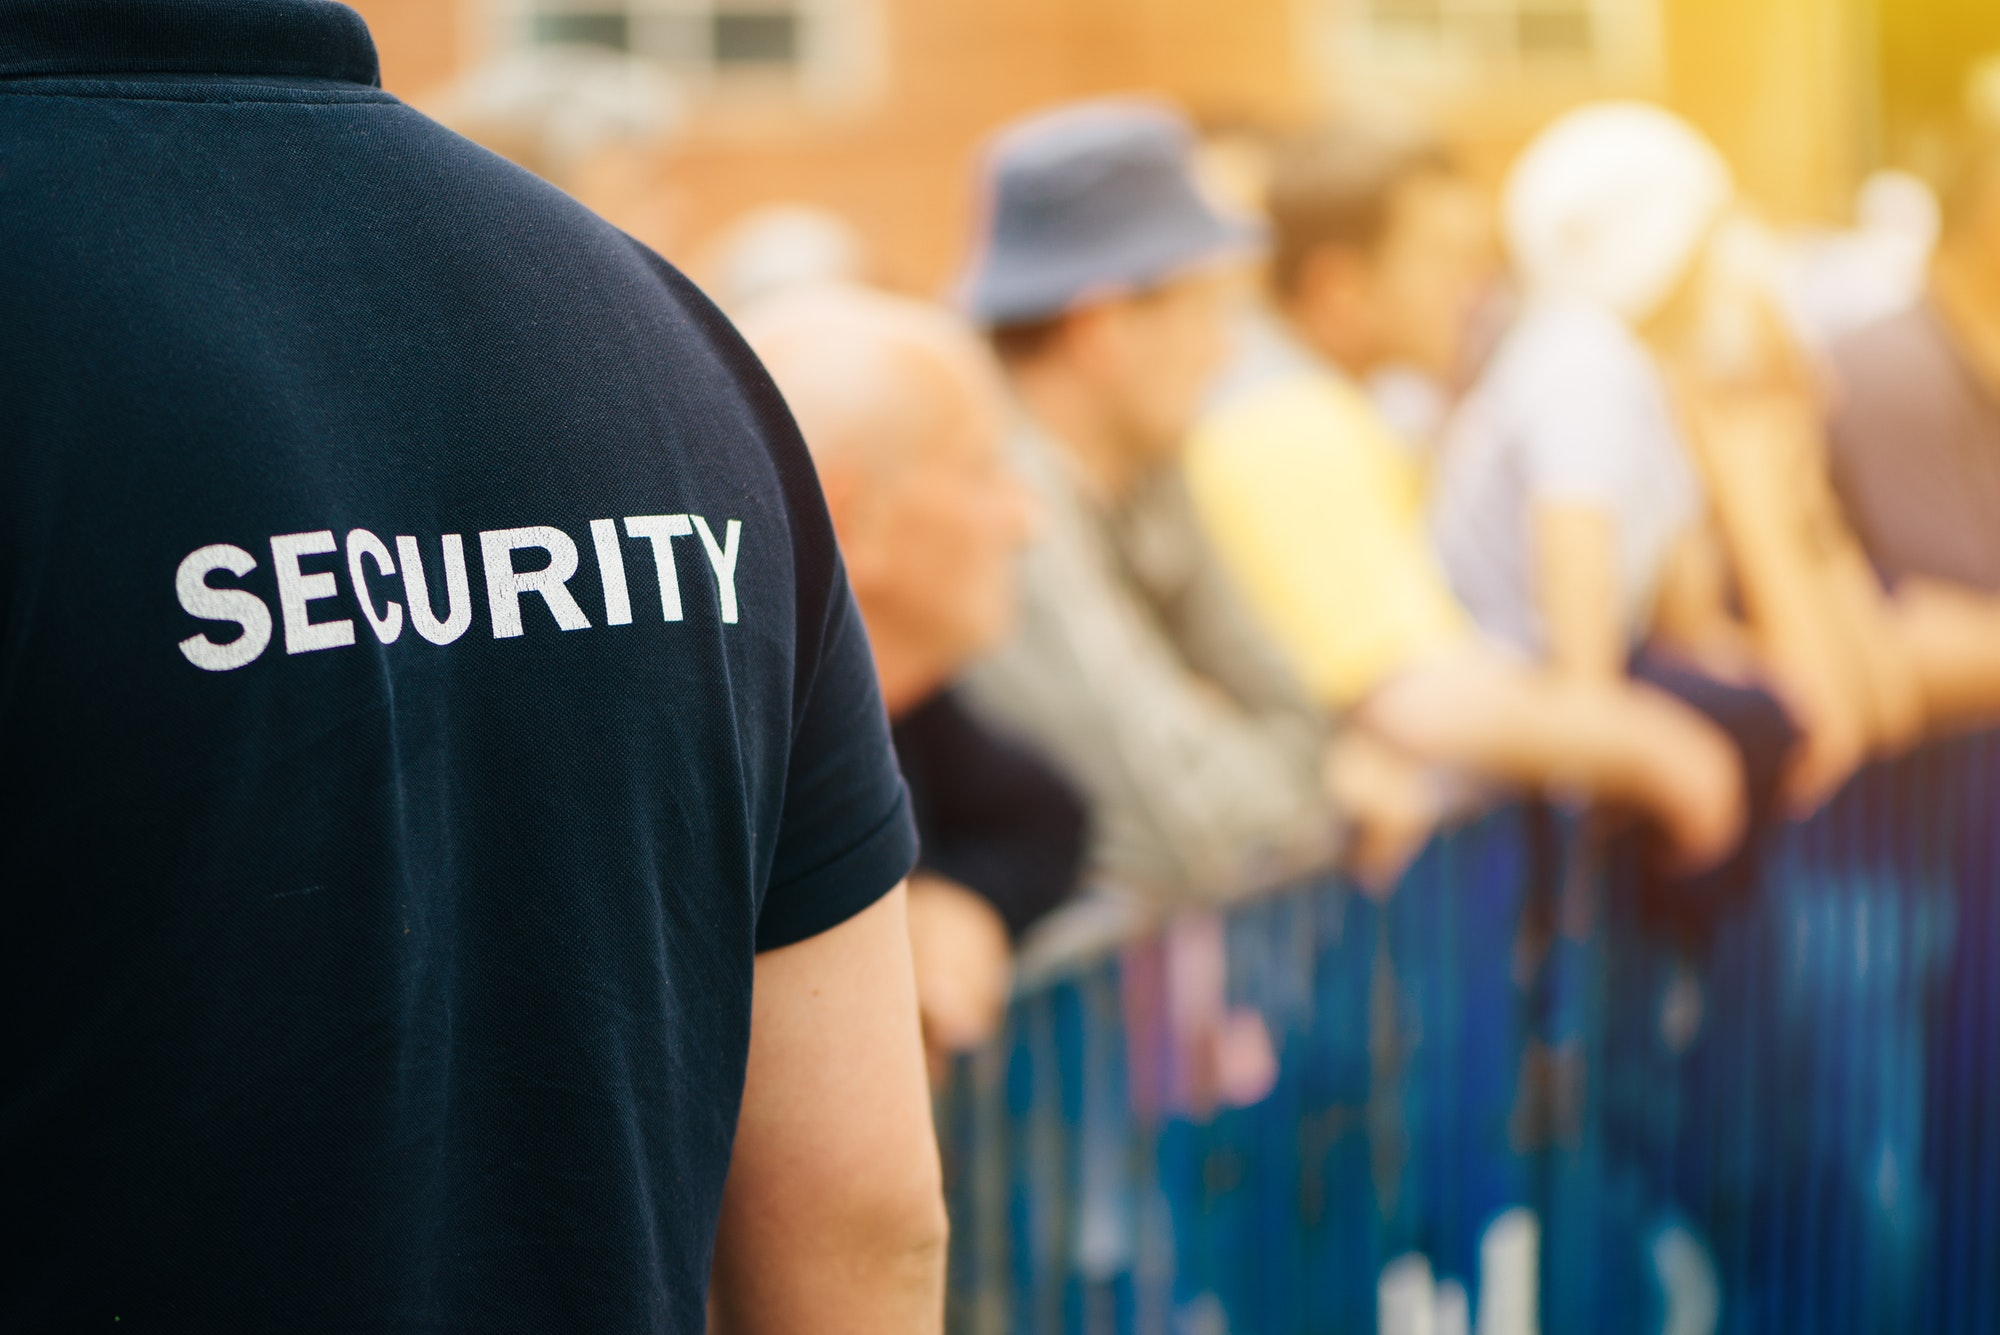 Member of security guard team on public event